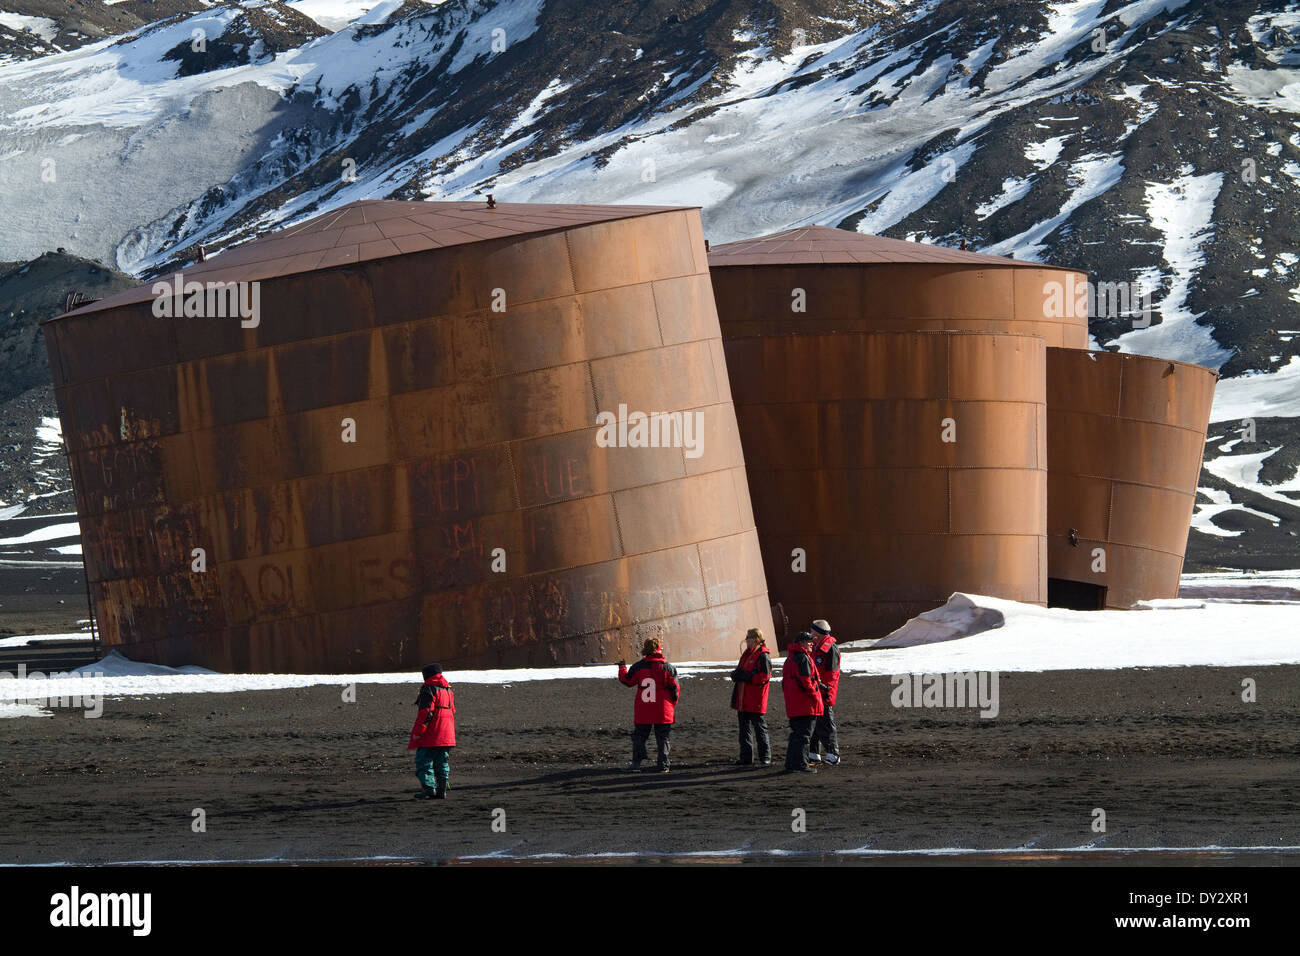 Antarctica tourism at Whaler's Bay, Deception Island. Tourists from cruise ship explore near derelict whale oil tanks on beach. - Stock Image